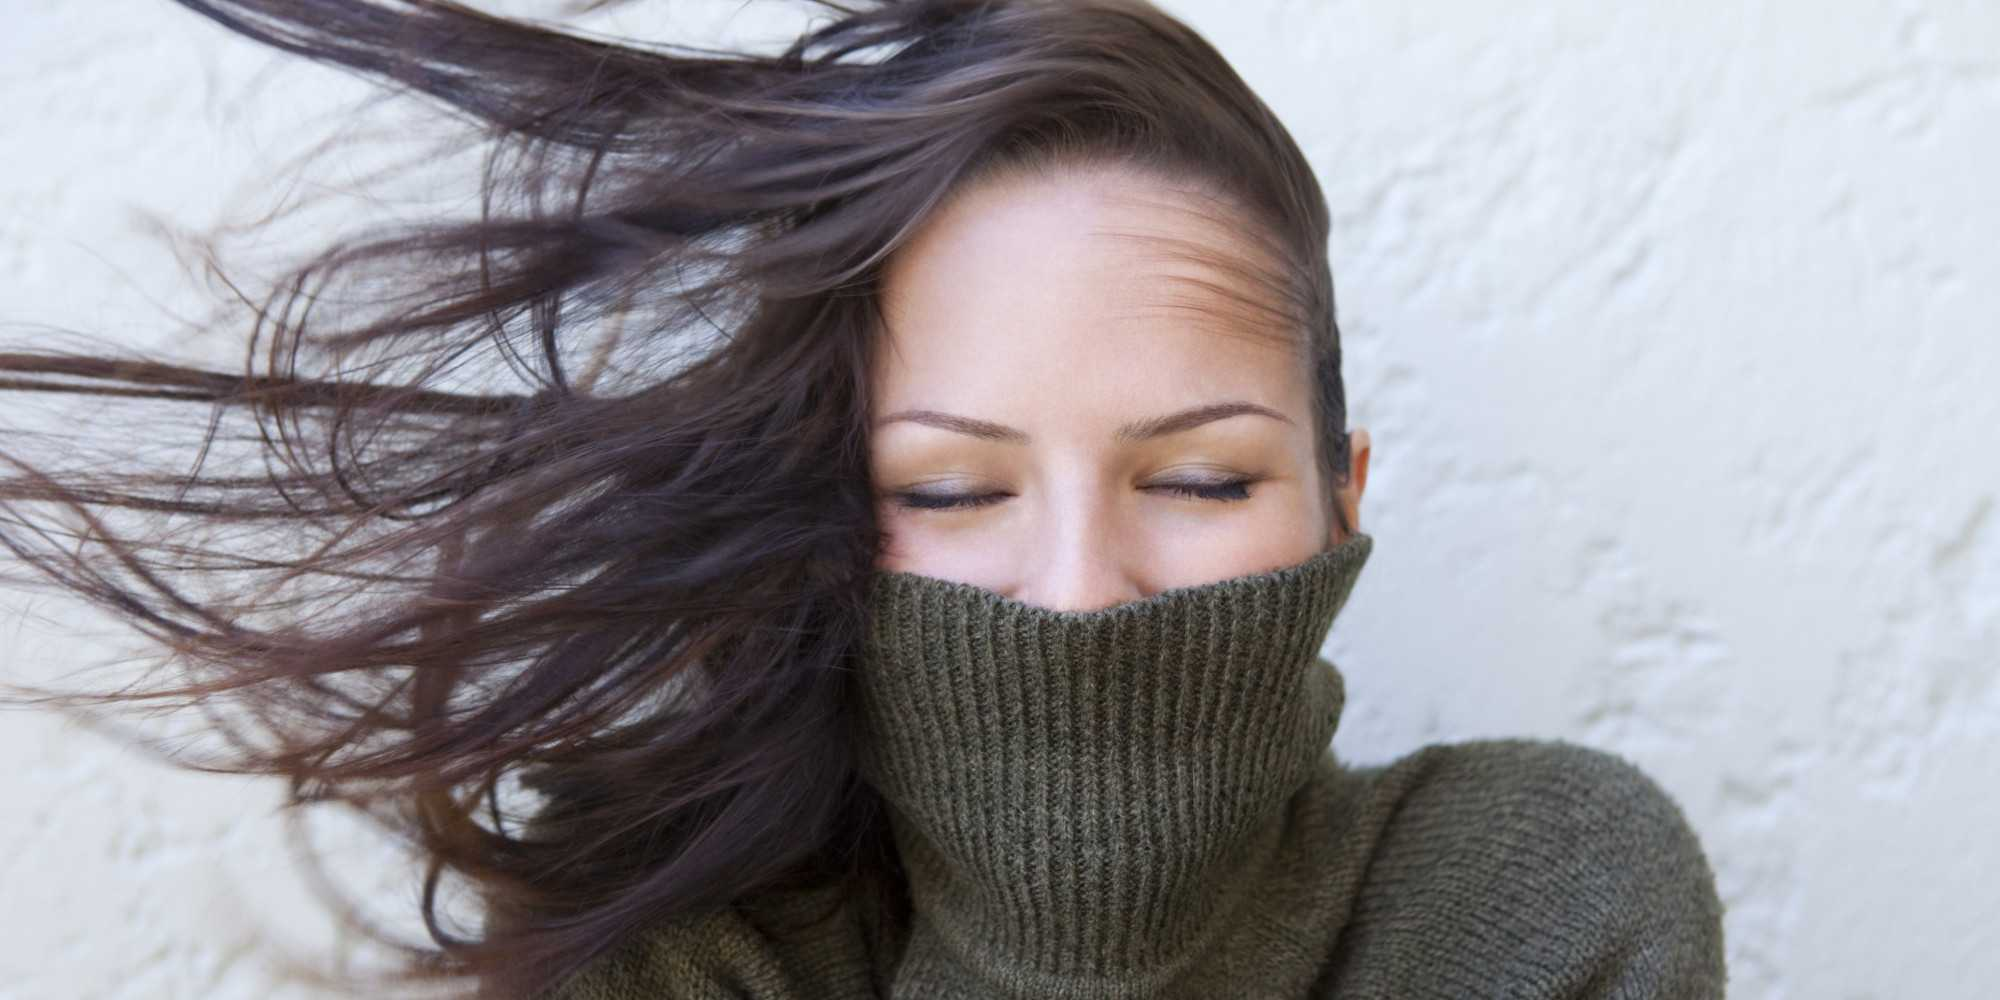 o WINTER HAIR facebook - Hair Care during Winters- Tame the Wild Mane